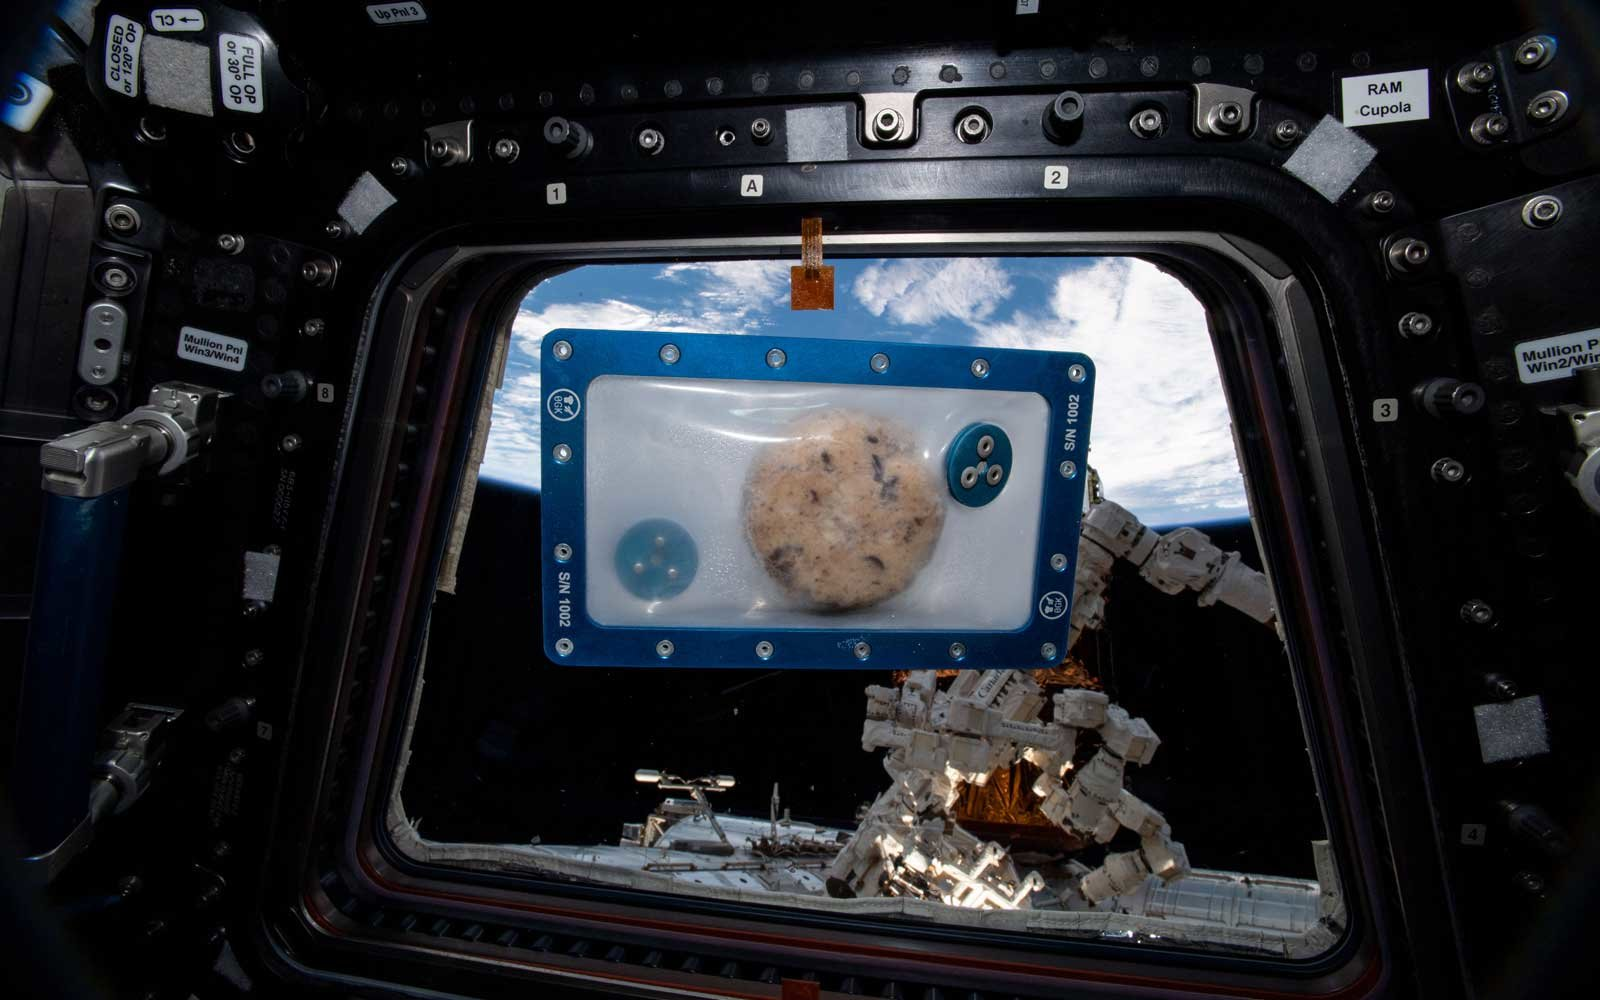 DoubleTree by Hilton cookies will be baked in space on ISS